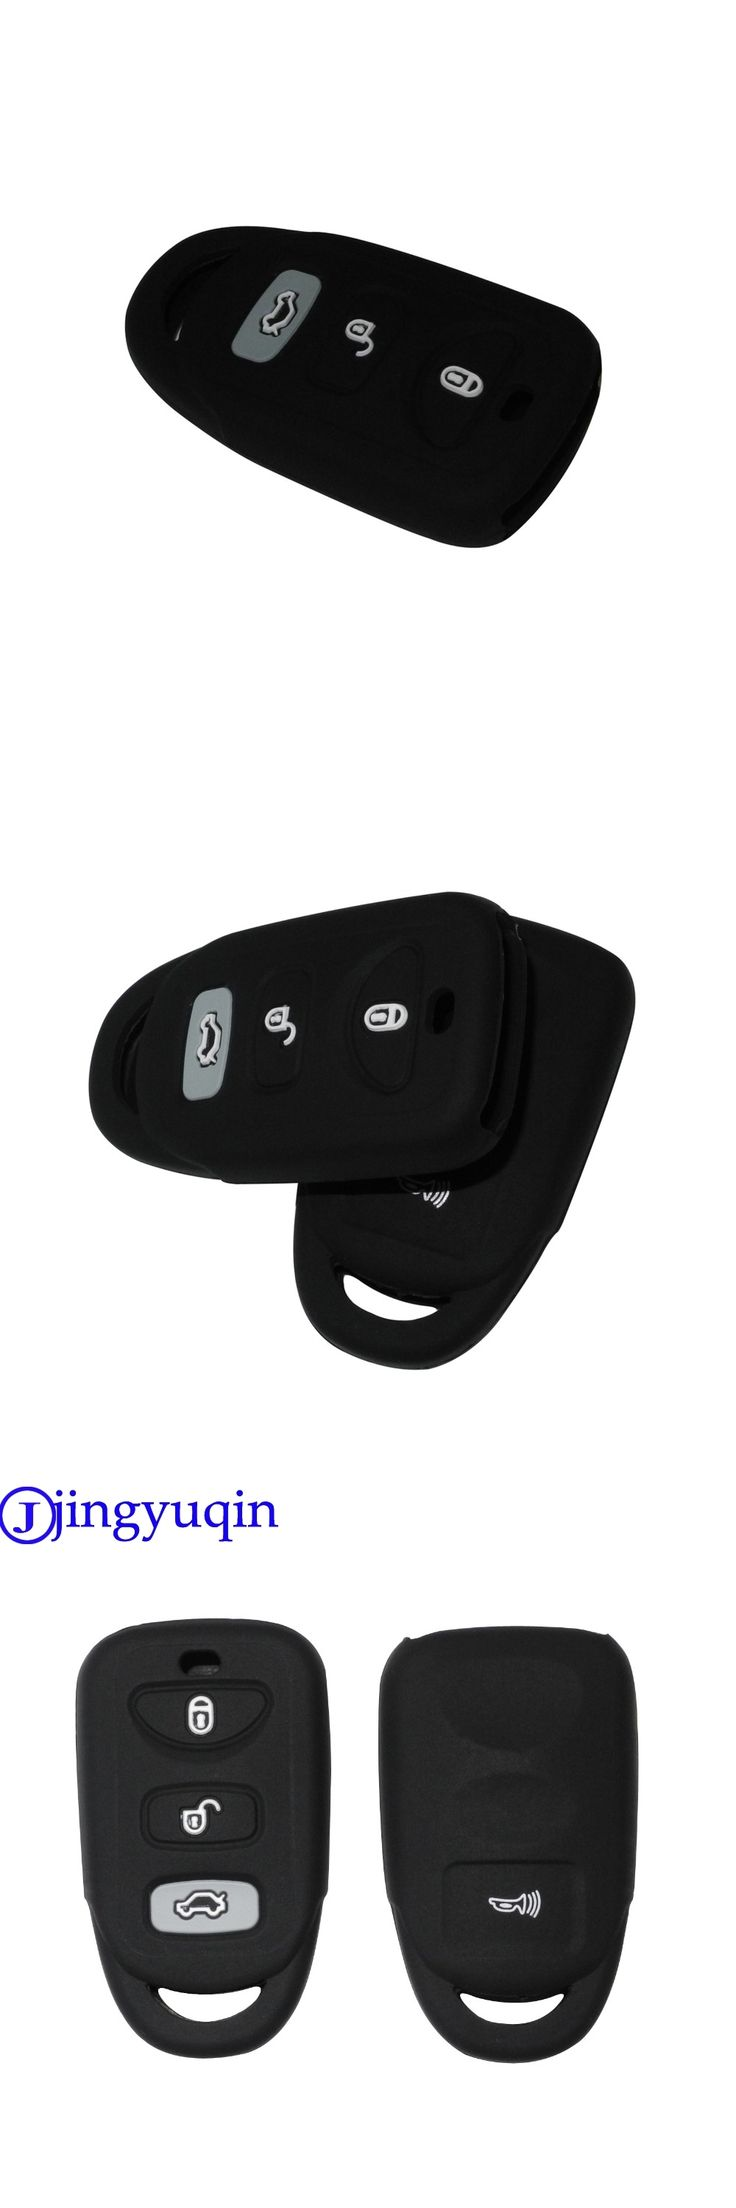 jingyuqin Remote Silicone Cover For HYUNDAI KIA Tuscon Elantra Rio Sportage Rondo Accent Smart Remote 4 Buttons Key Case Fob 4B